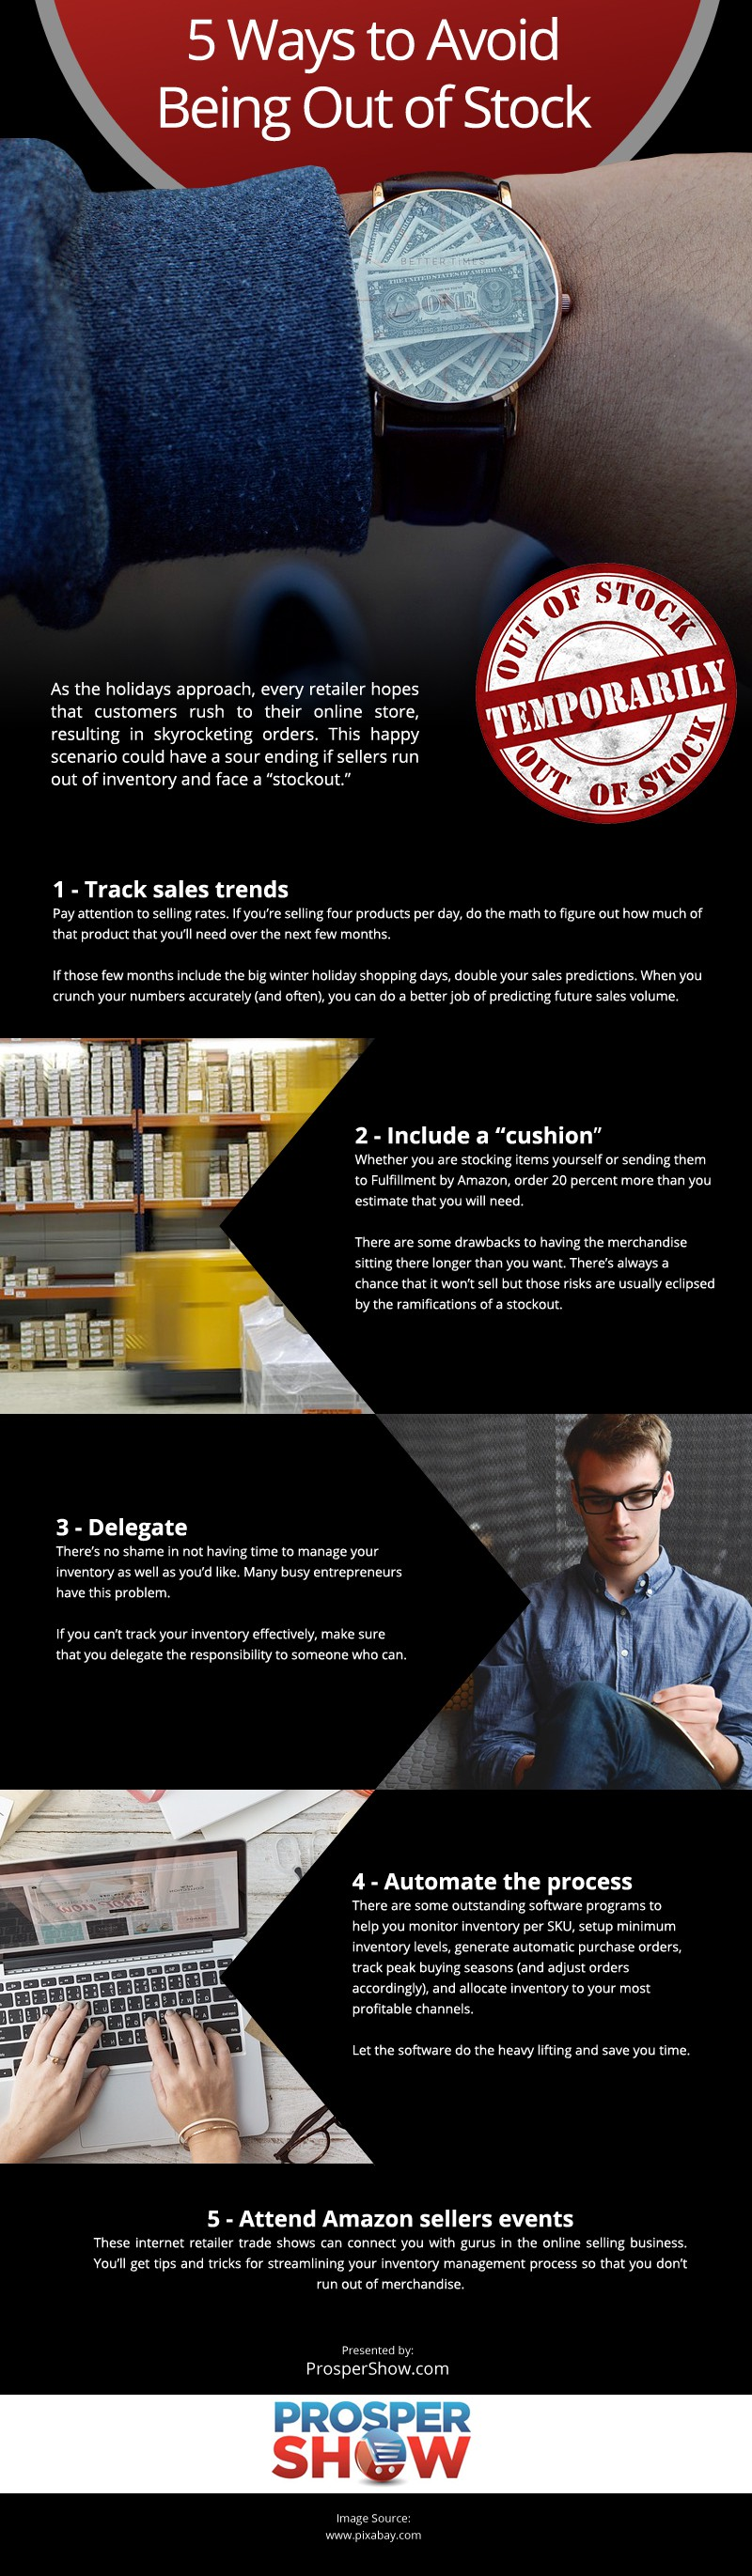 5 Ways to Avoid Being Out of Stock Infographic